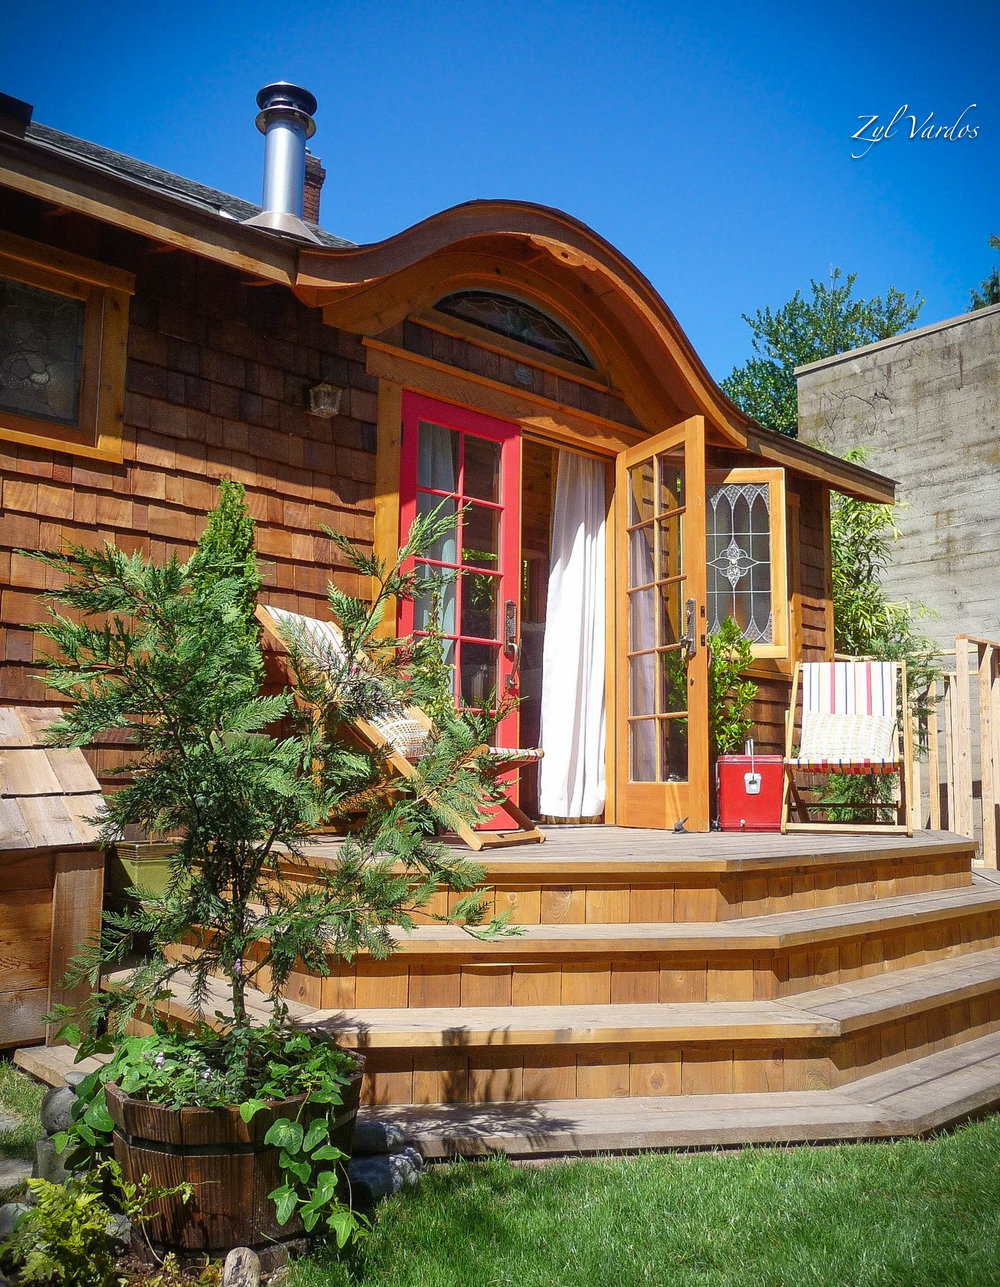 little-bird-tiny-house-porch-zyl-vardos.jpg